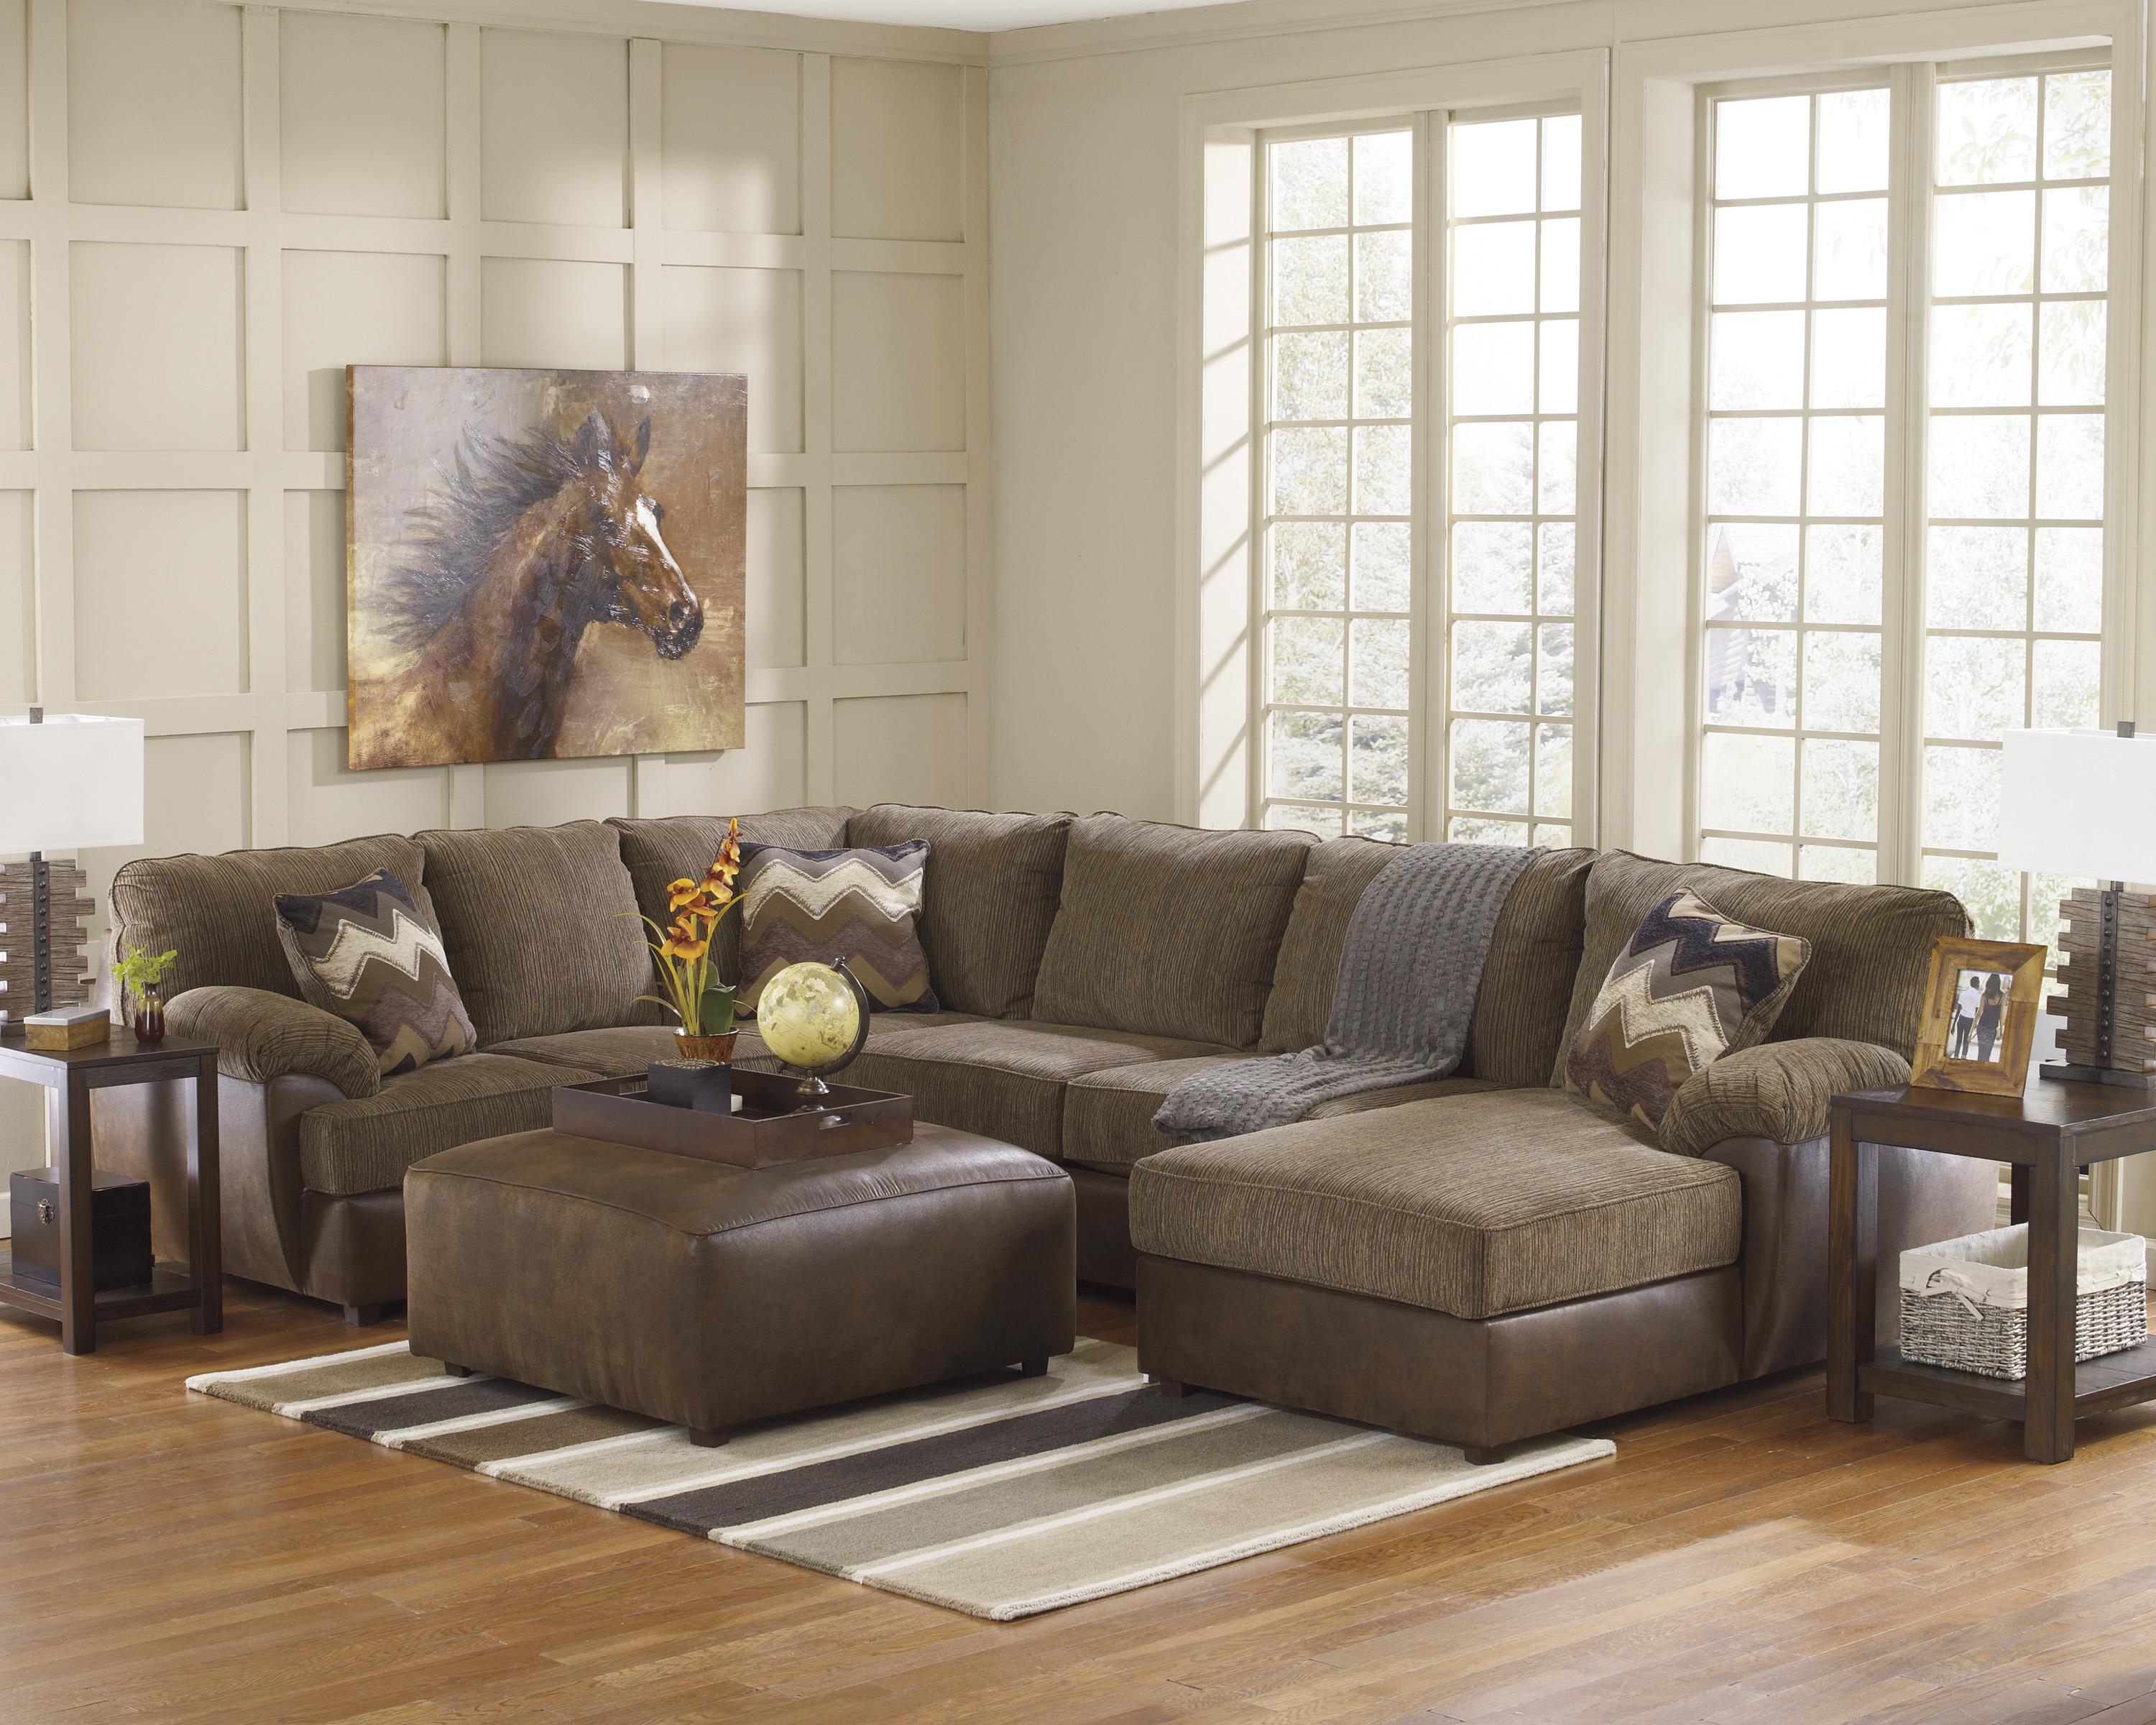 Benchcraft Cladio - Hickory Stationary Living Room Group - Item Number: 24100 Living Room Group 1